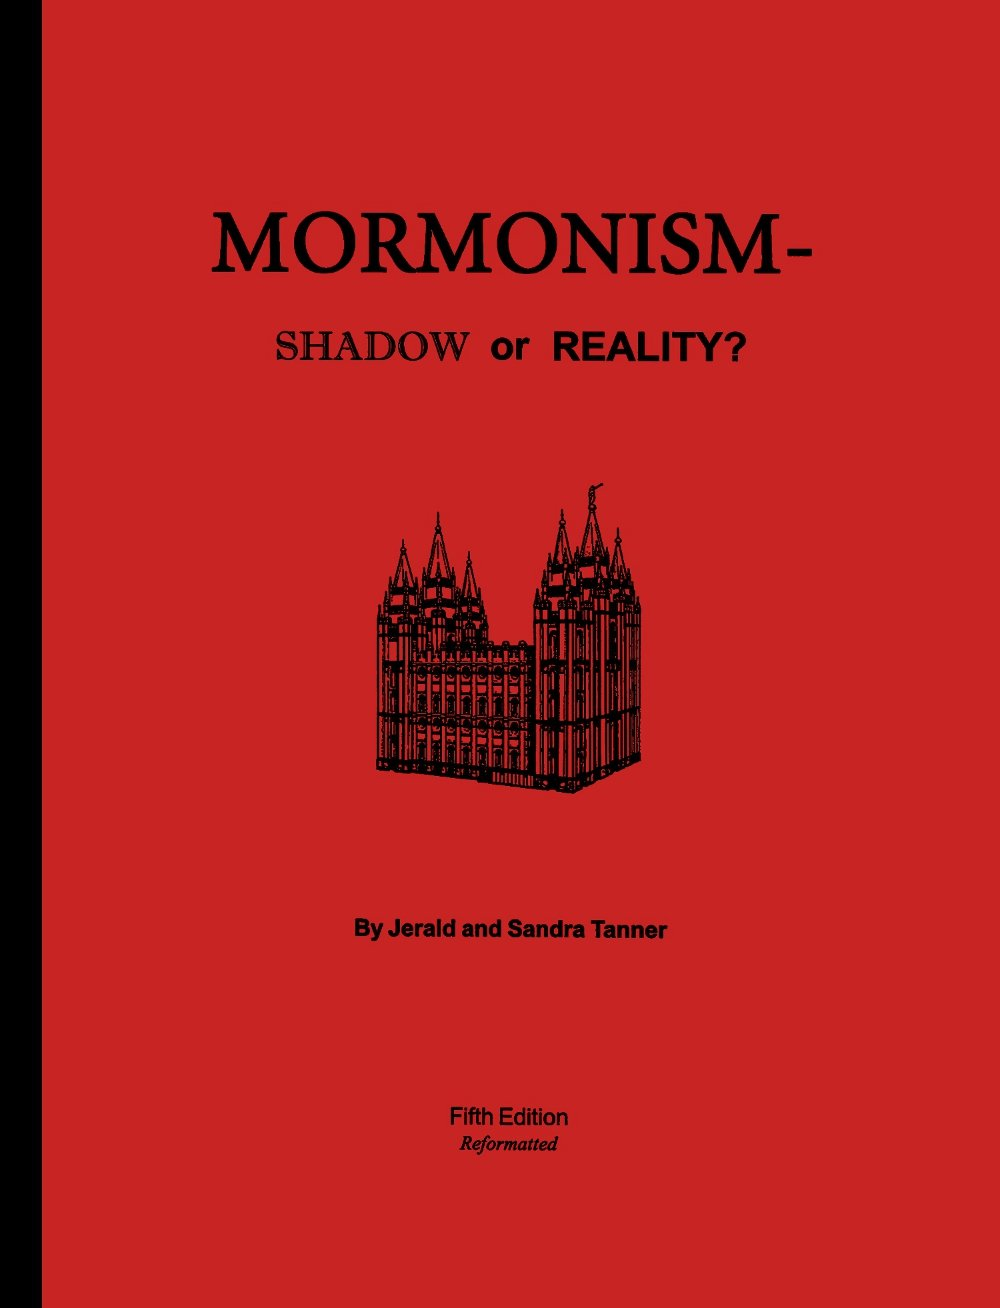 Mormonism - Shadow or Reality? Jerald and Sandra Tanner